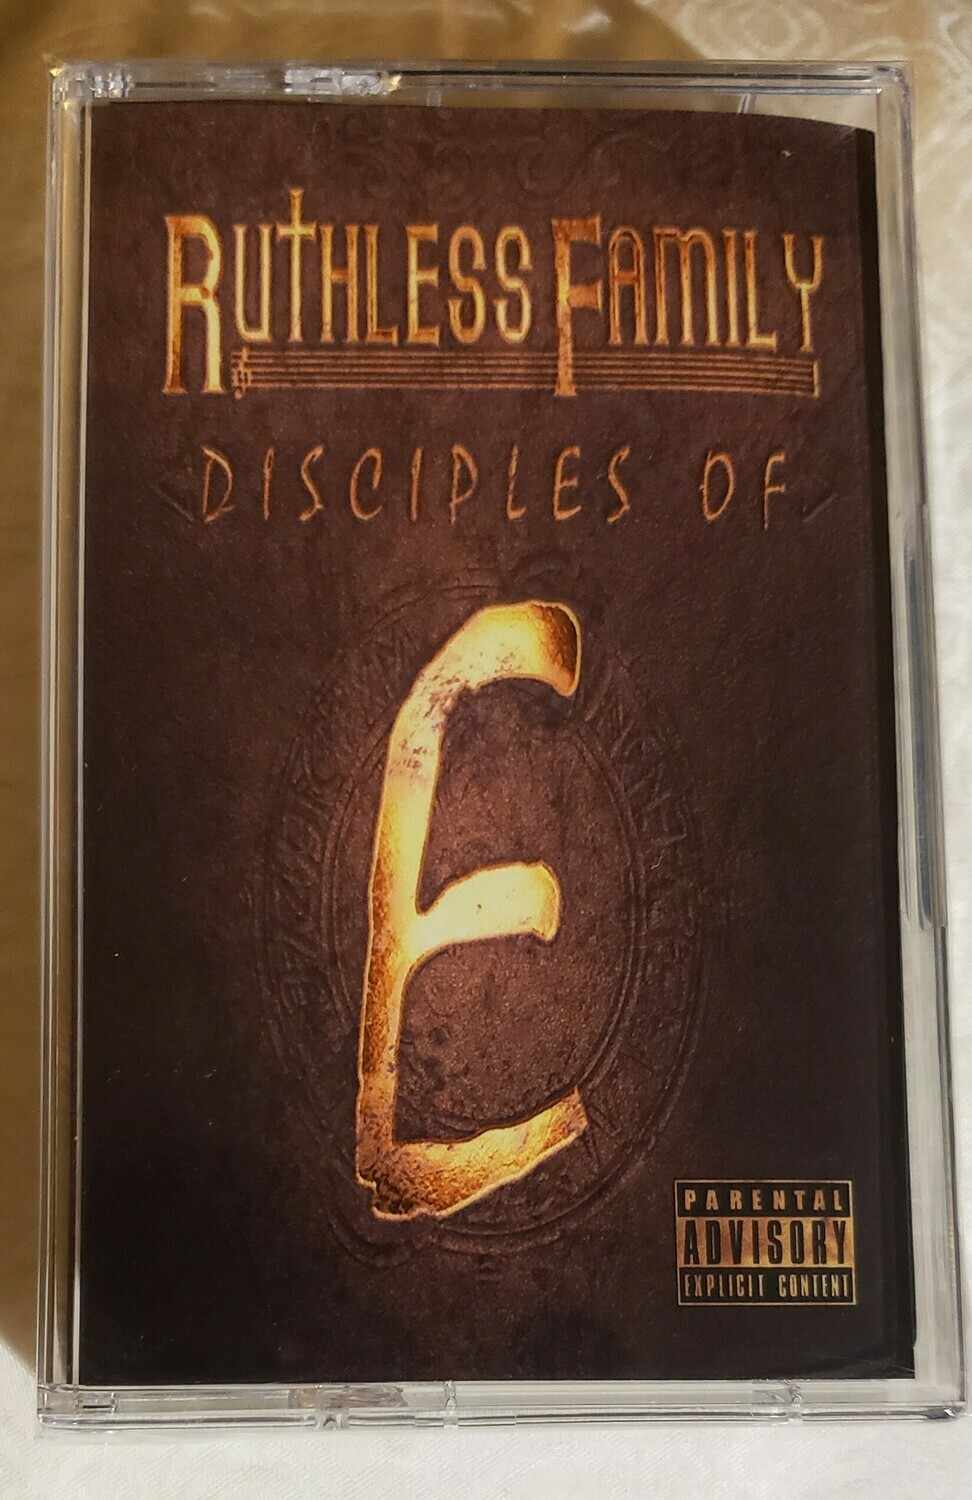 Ruthless Family : Disciples of E  (Cassette Tape) Limited Quantity #eazye #ruthlessfamily #tape